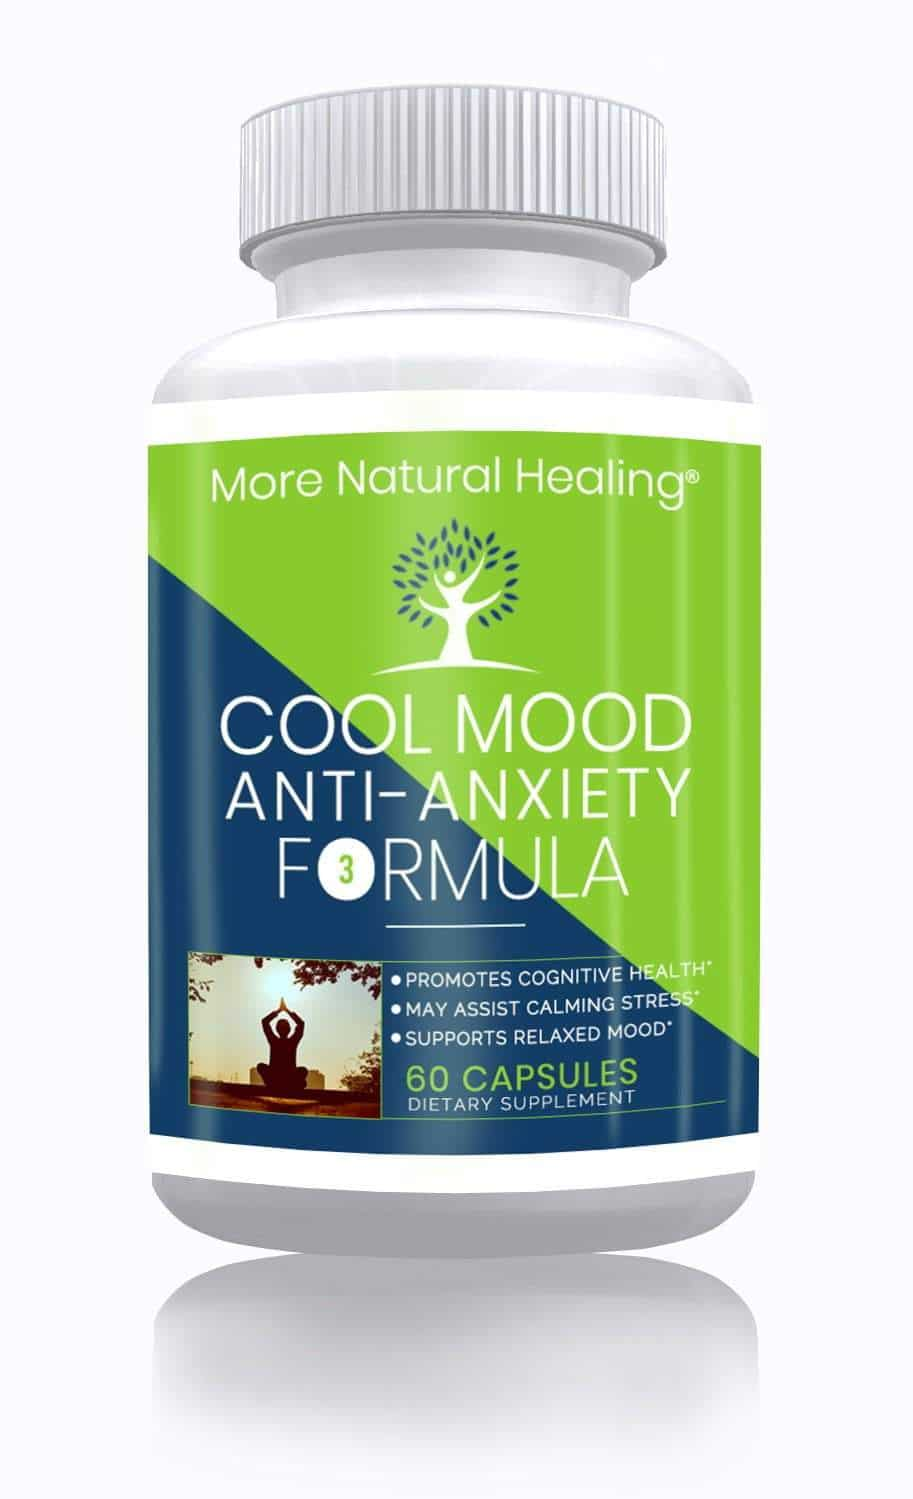 Cool Mood Anti-Anxiety Formula Supplement for Anxiety Relief, Cognitive Health and Stress Relief - More Natural Healing